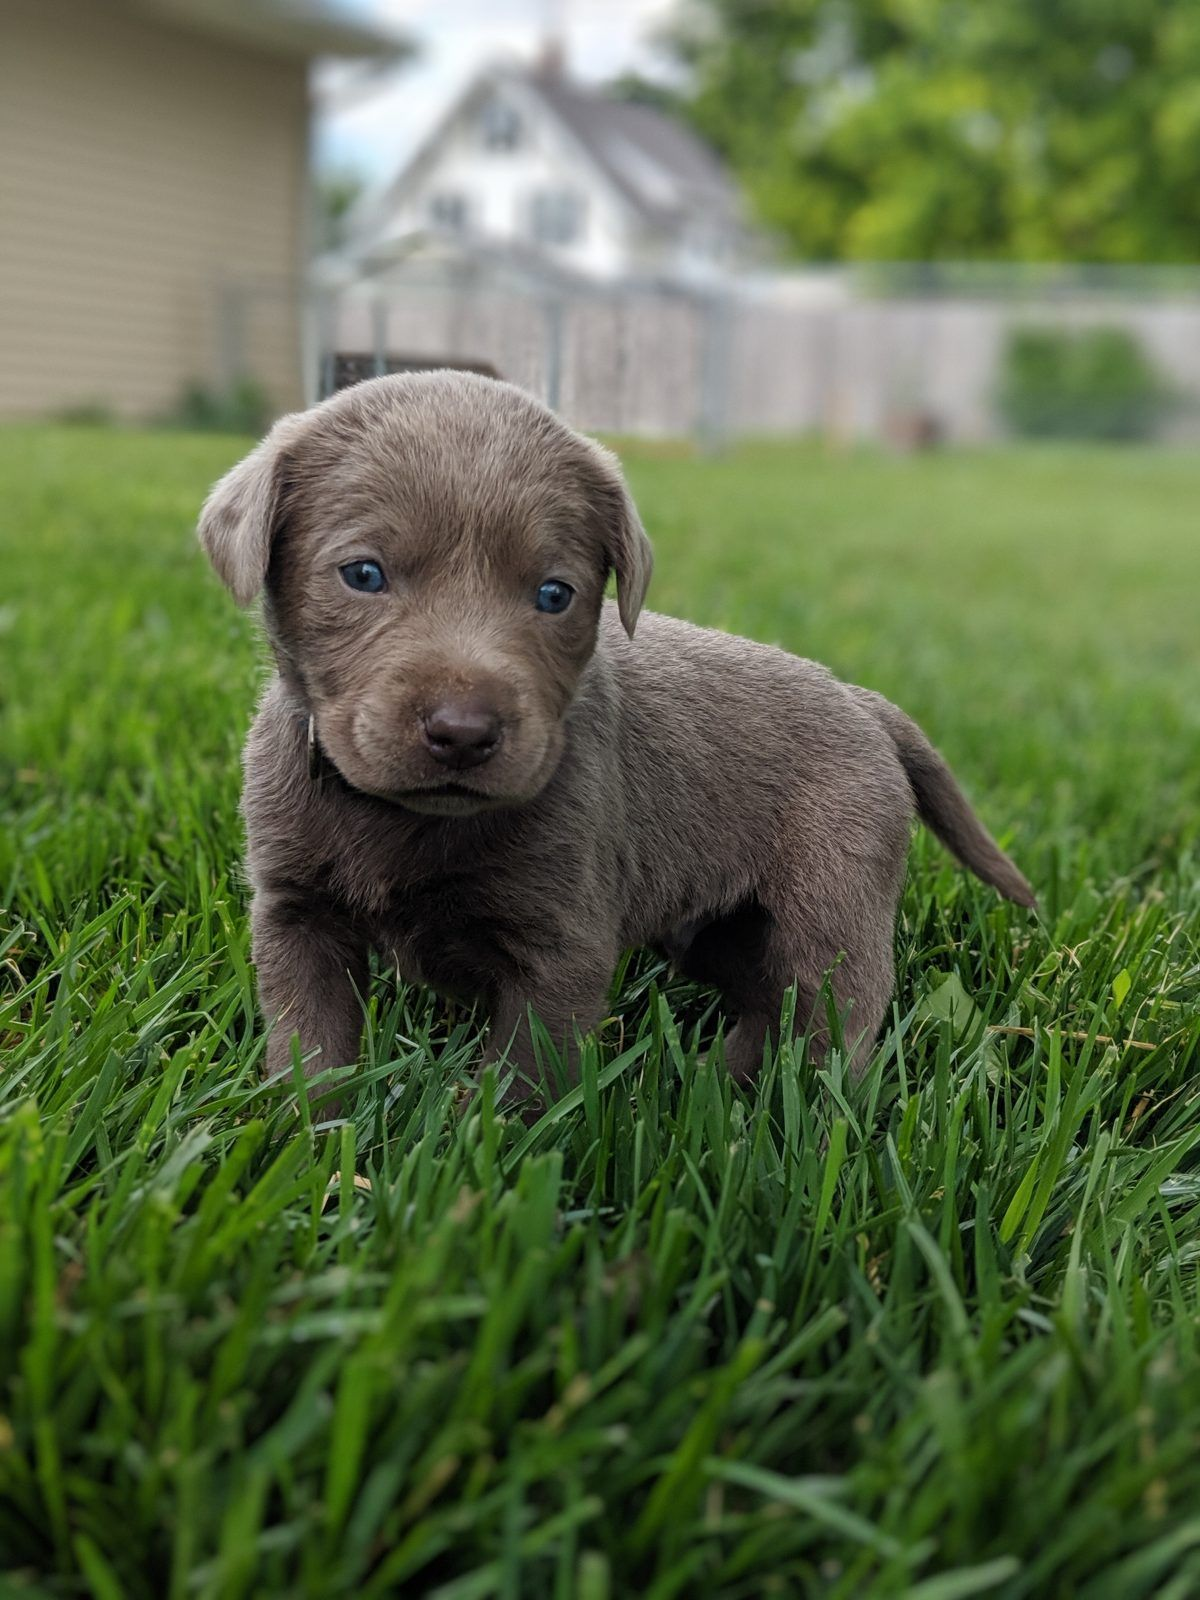 Black Collar Female Akc Poodle Puppy For Sale At Fargo North Dakota Vip Puppies Labrador Retriever Puppies Labrador Retriever Puppies